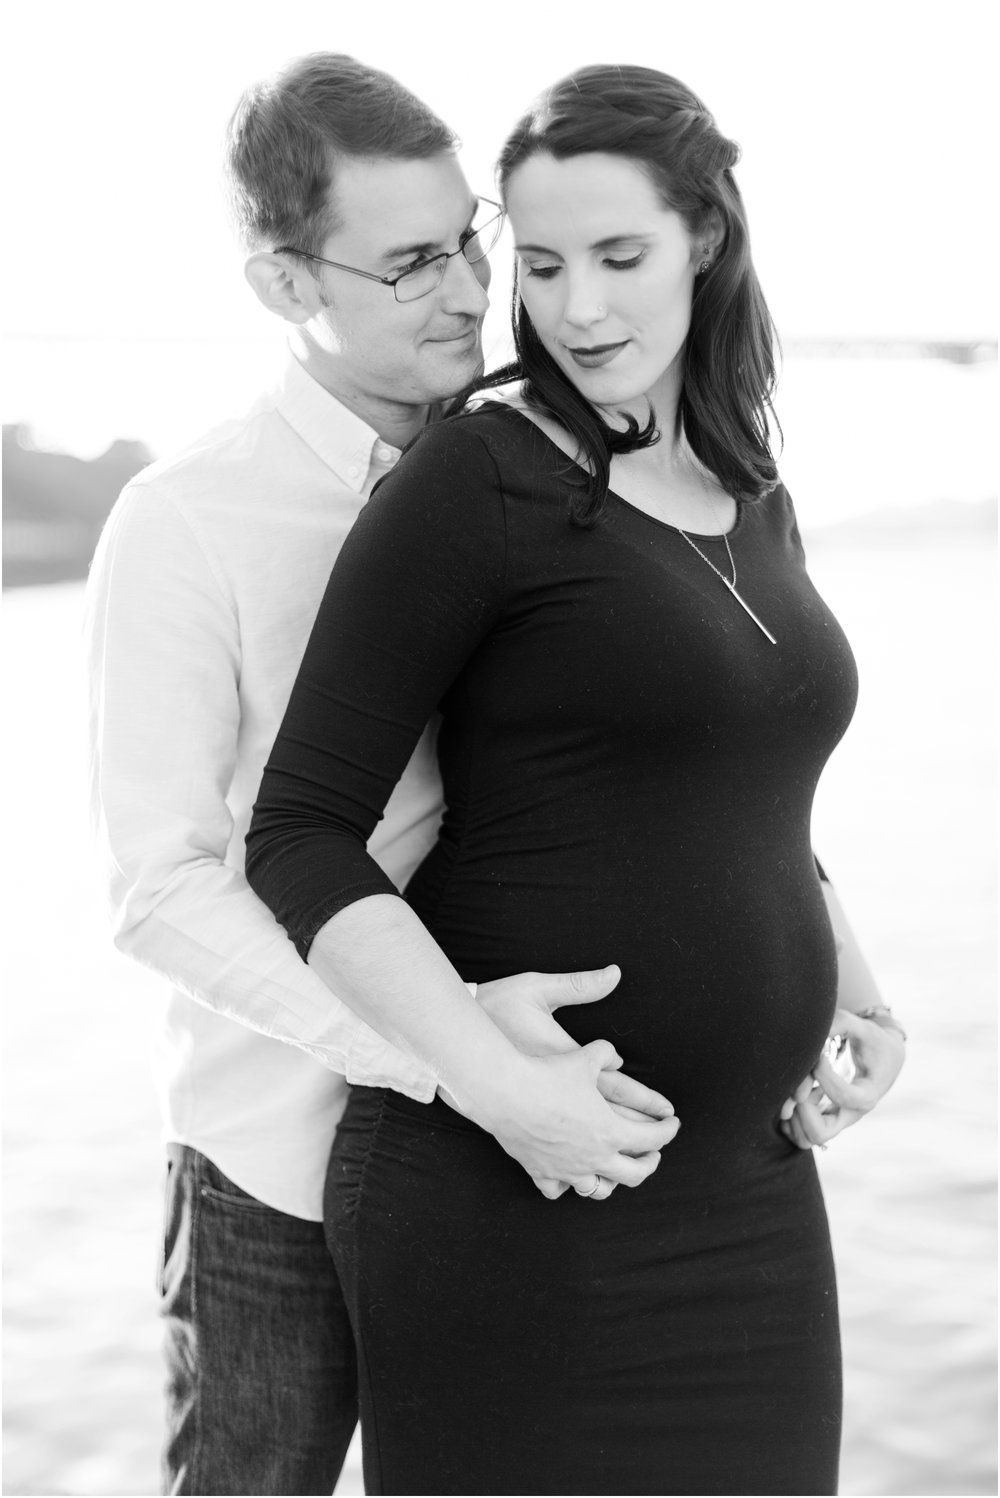 Crissy Field San Francisco maternity pictures by Briana Calderon Photography_0269.jpg